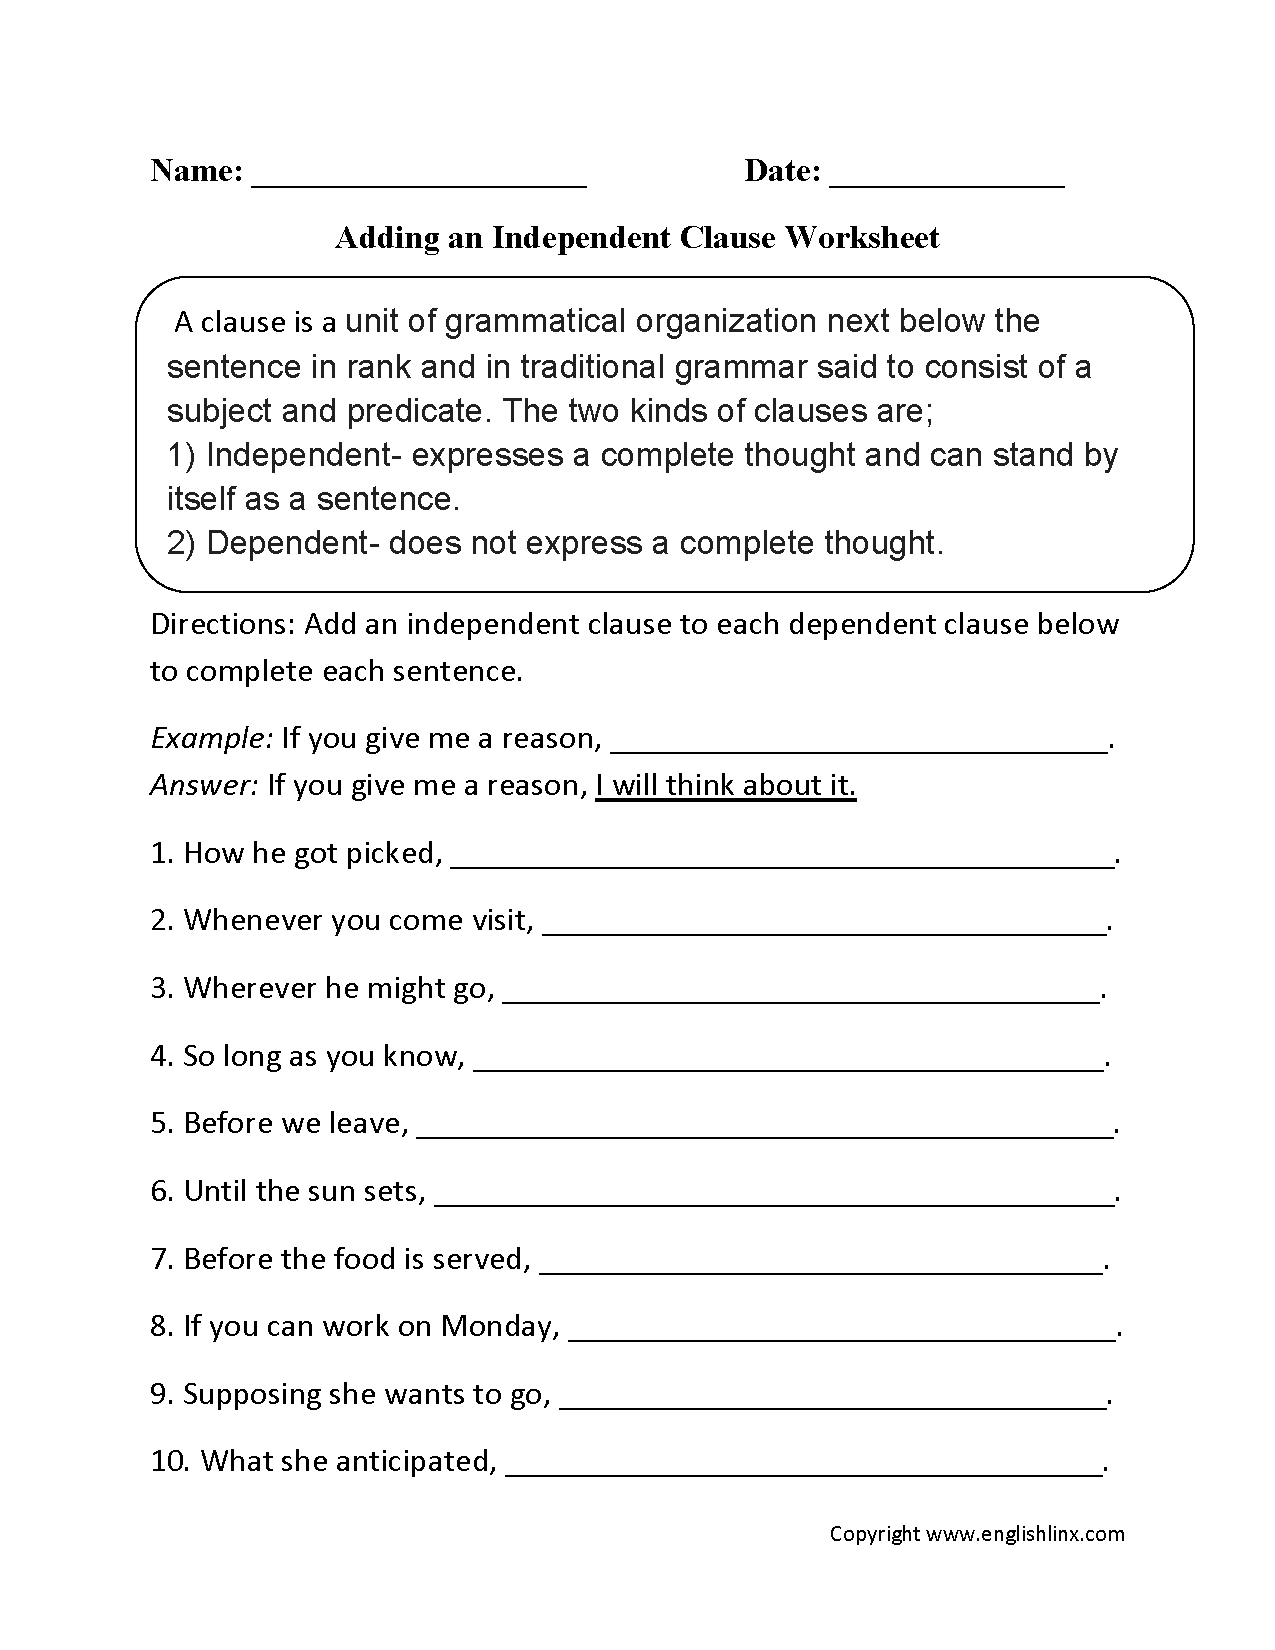 Worksheets Clauses Worksheet englishlinx com clauses worksheets adding an inependent clause worksheet